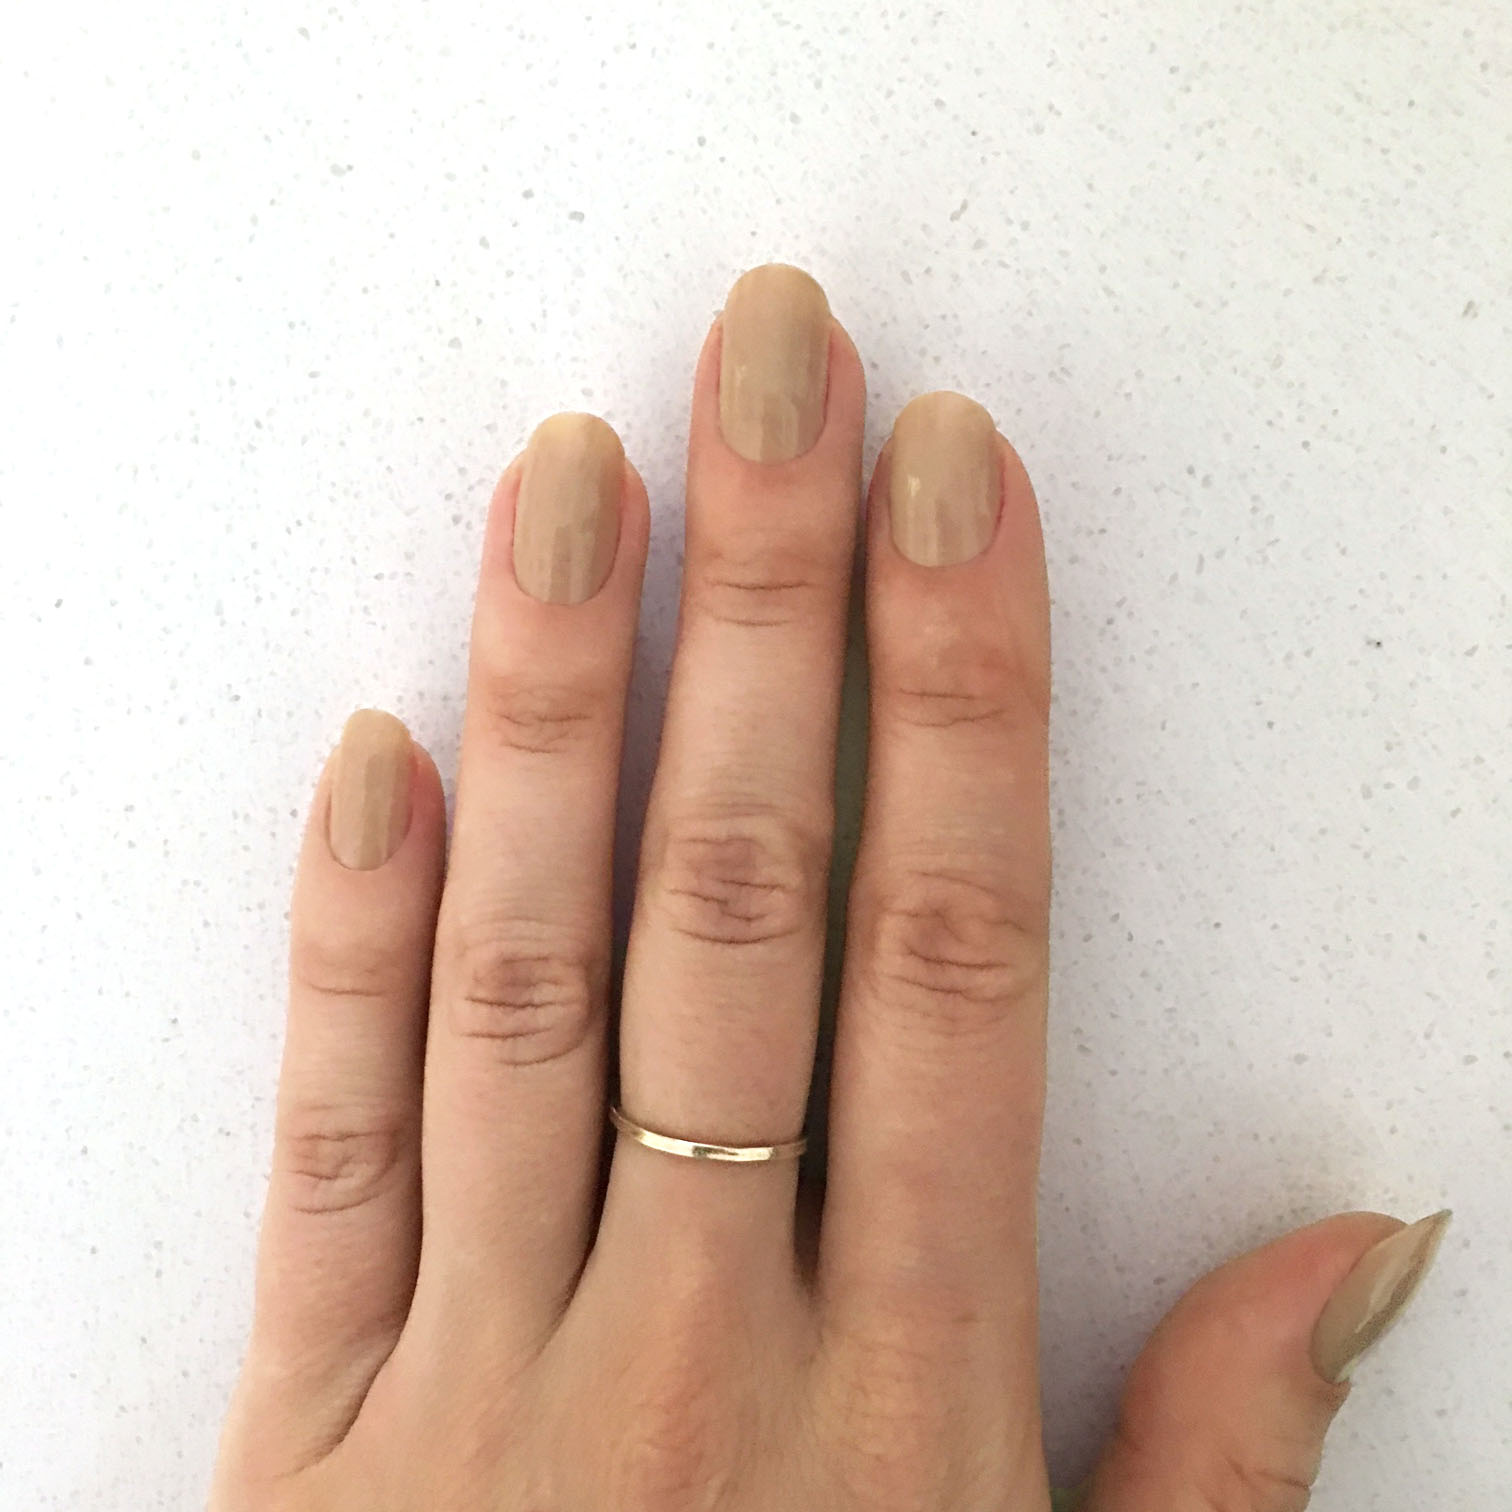 Step 1: Paint 2 coats of Nude.